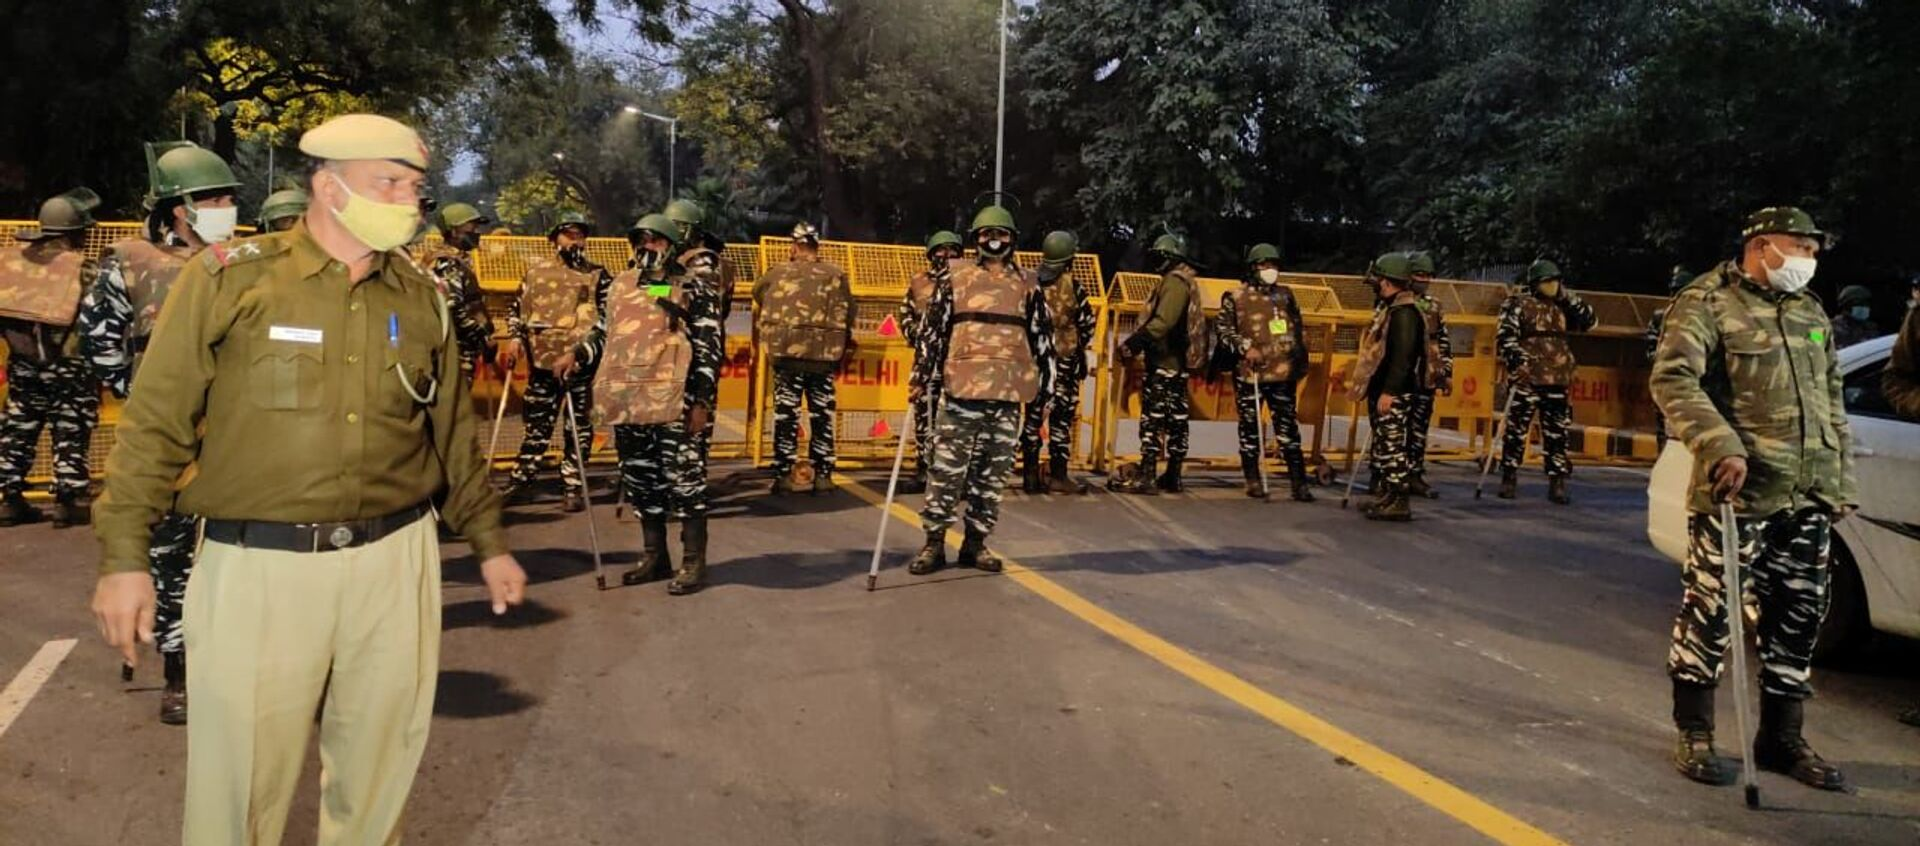 Security forces arrive at the site of the explosion near the Israeli Embassy in Delhi, India, on 29 January 2021. - Sputnik International, 1920, 31.01.2021